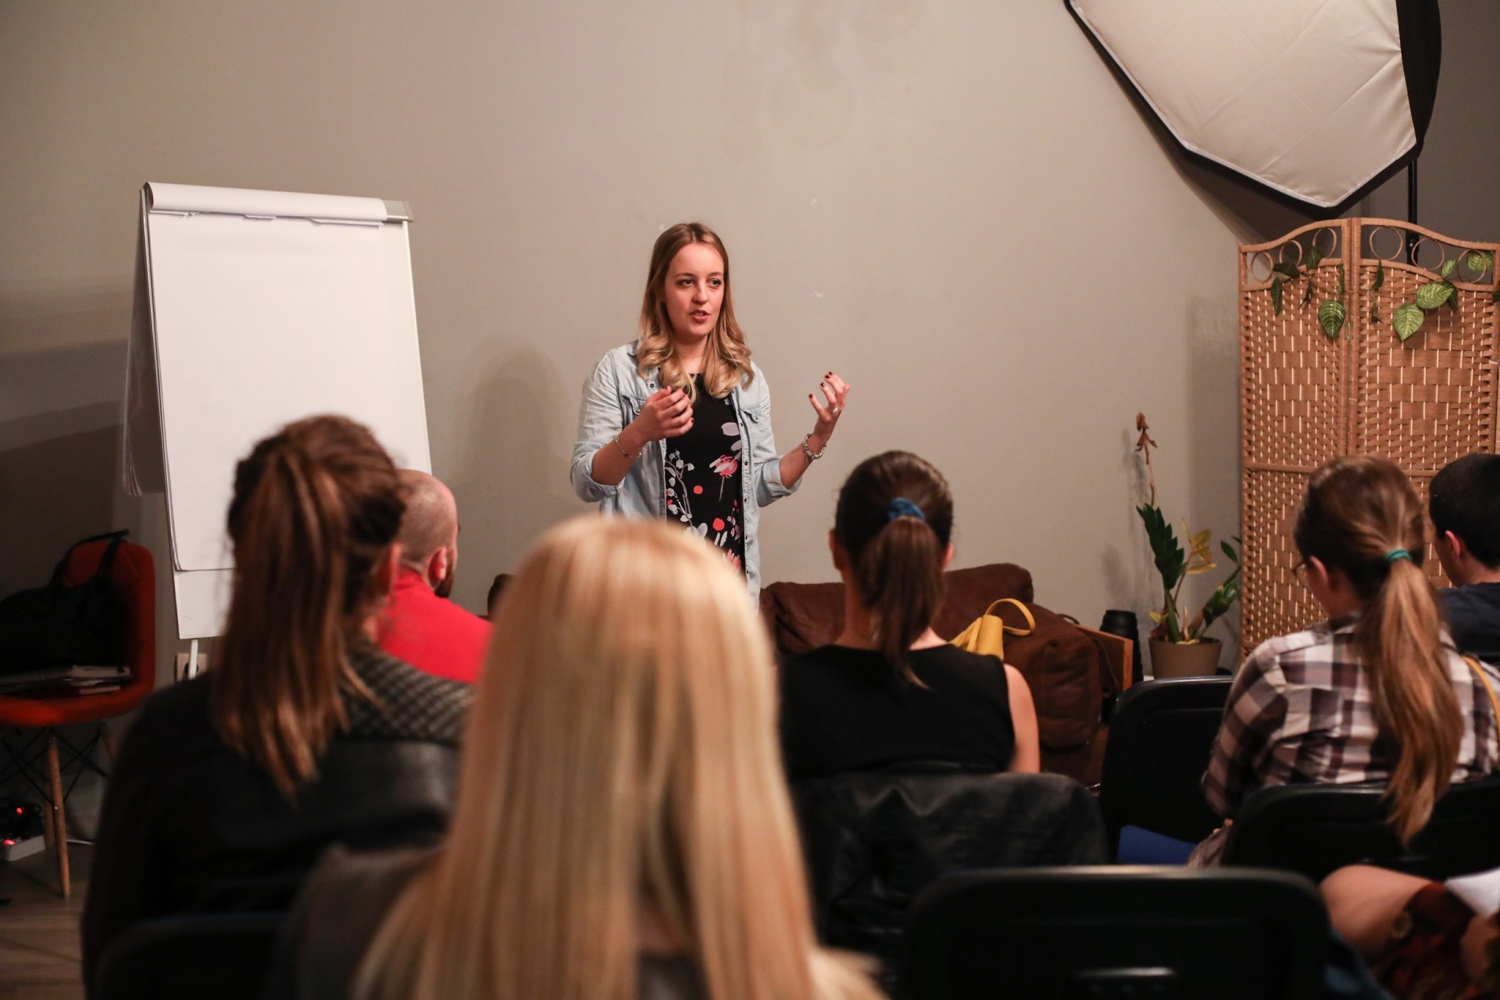 Workshop 'Exercising The Self-Awareness' at Zahara